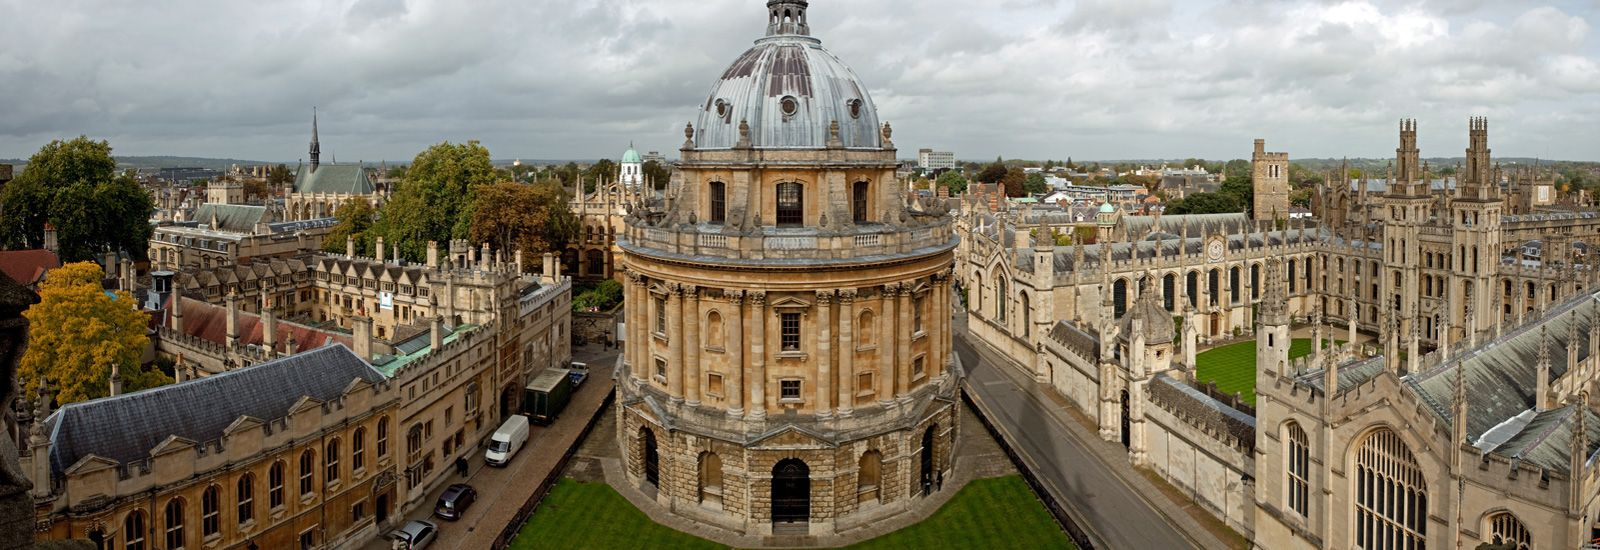 View of Oxford's Radcliffe Camera building